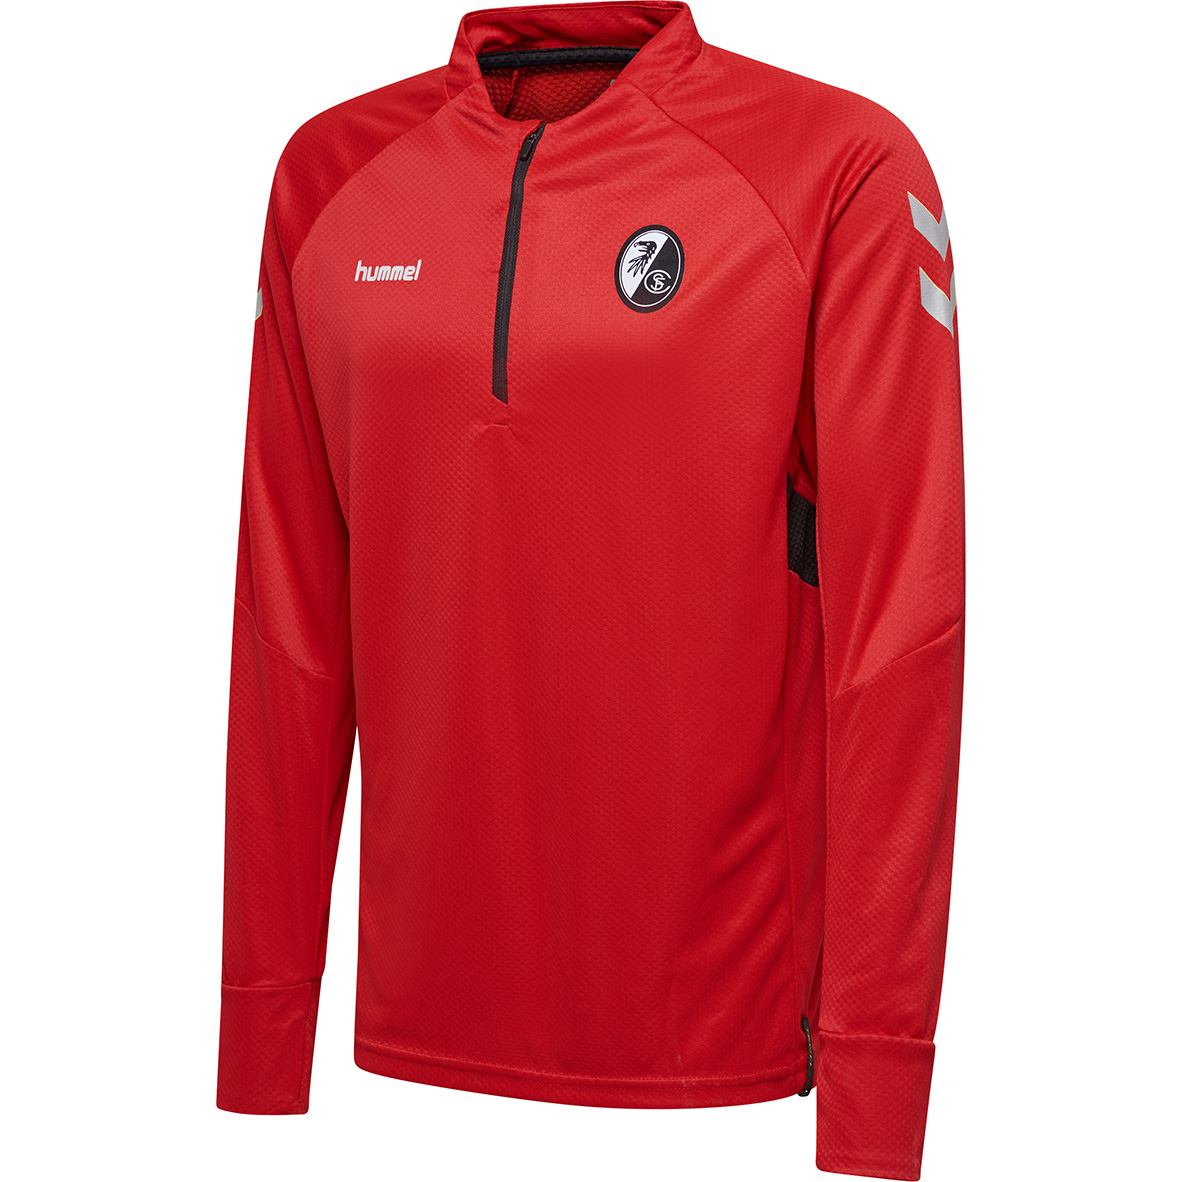 huge selection of 784a2 dddfe Hummel SC Freiburg Tech Move - Herren Half Zip Shirt Langarmshirt -  203099-3062 rot